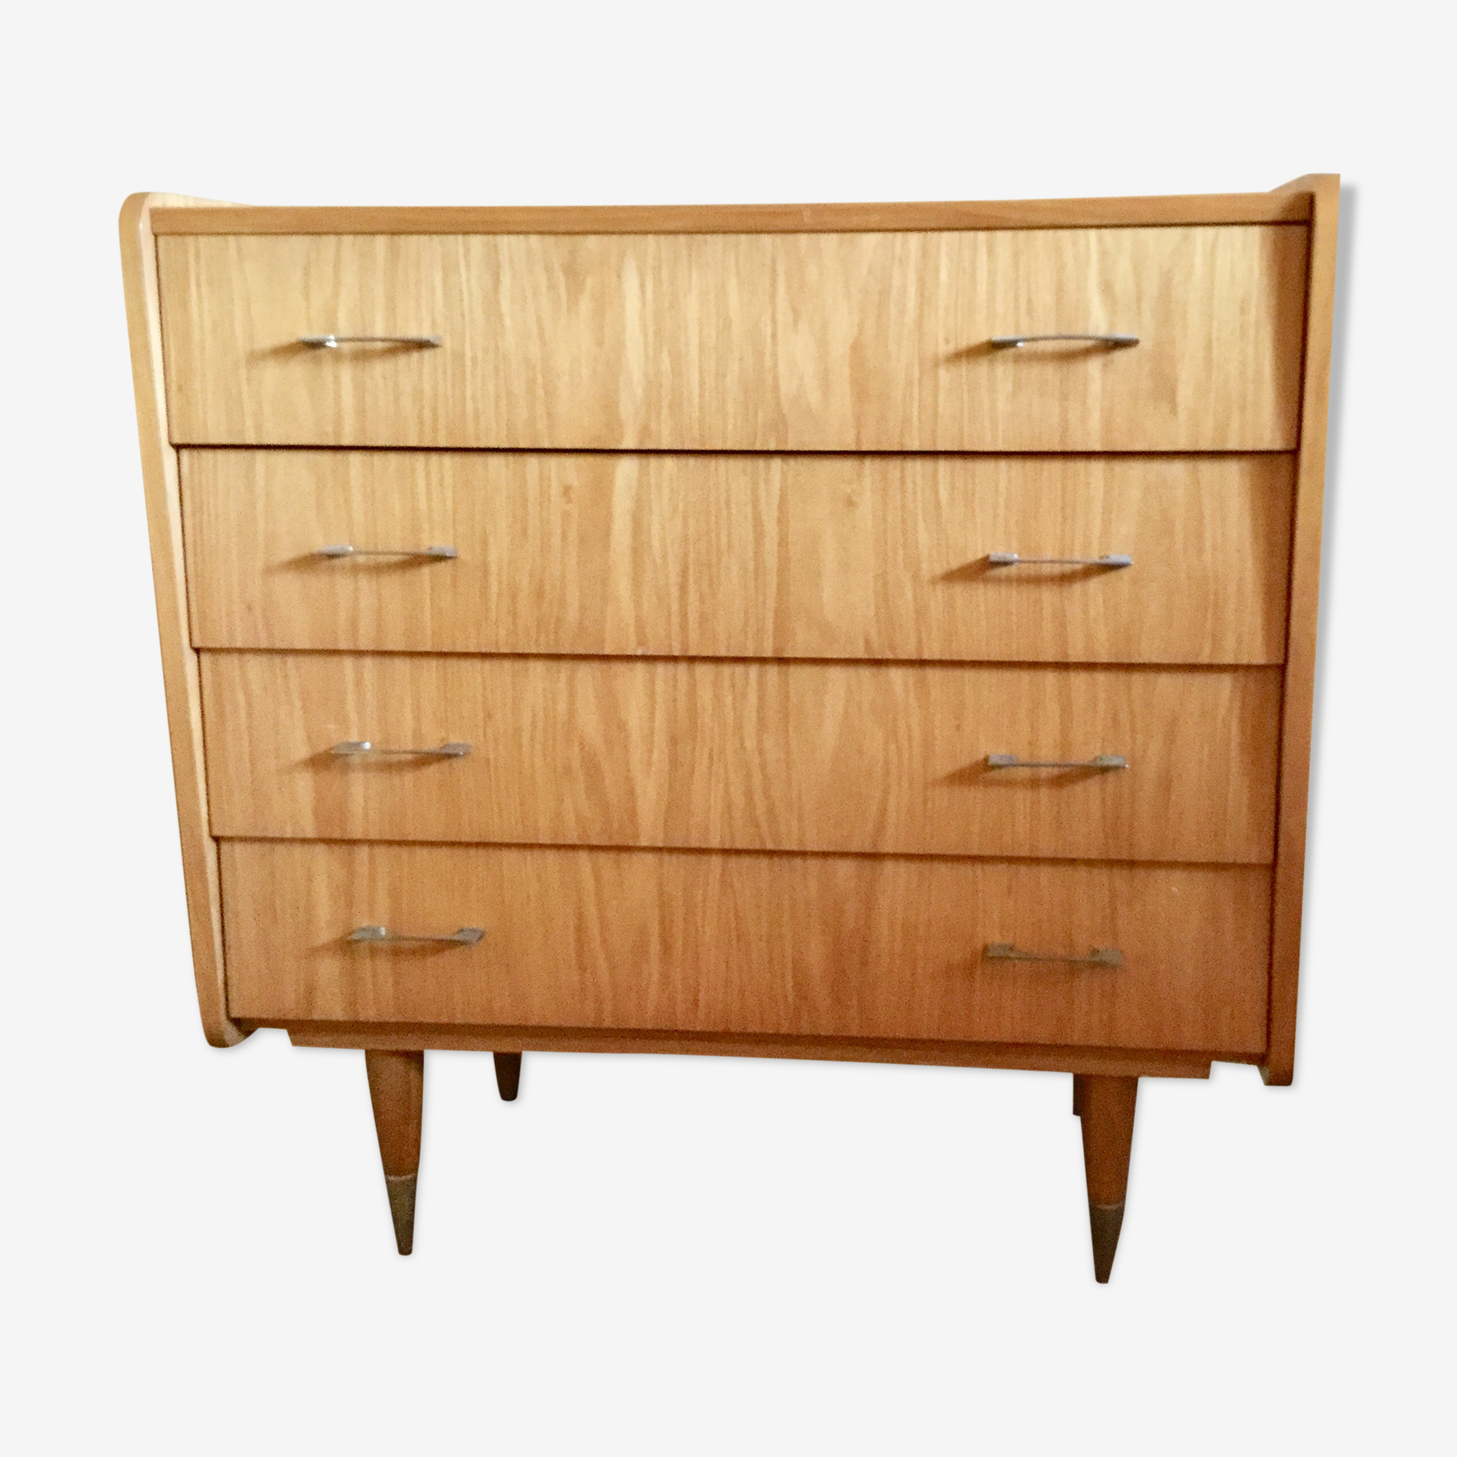 Dating back to the 1960s vintage dresser